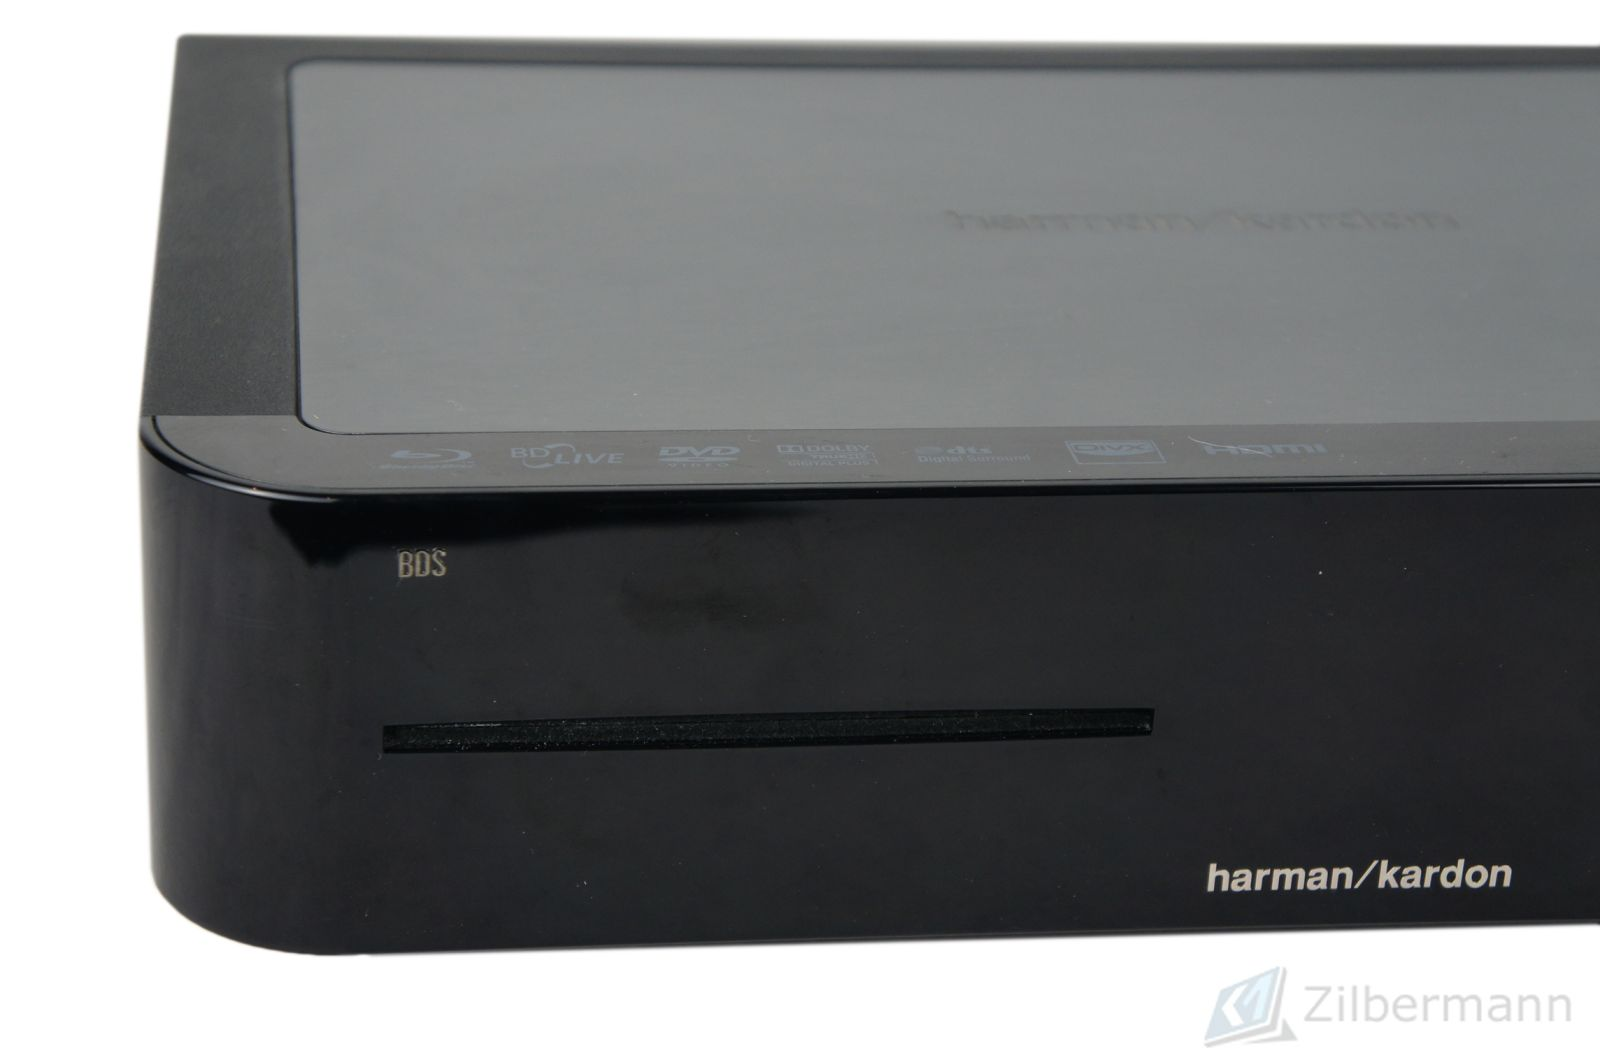 Harman_Kardon_BDS_2_Receiver_Blu-Ray_USB_06